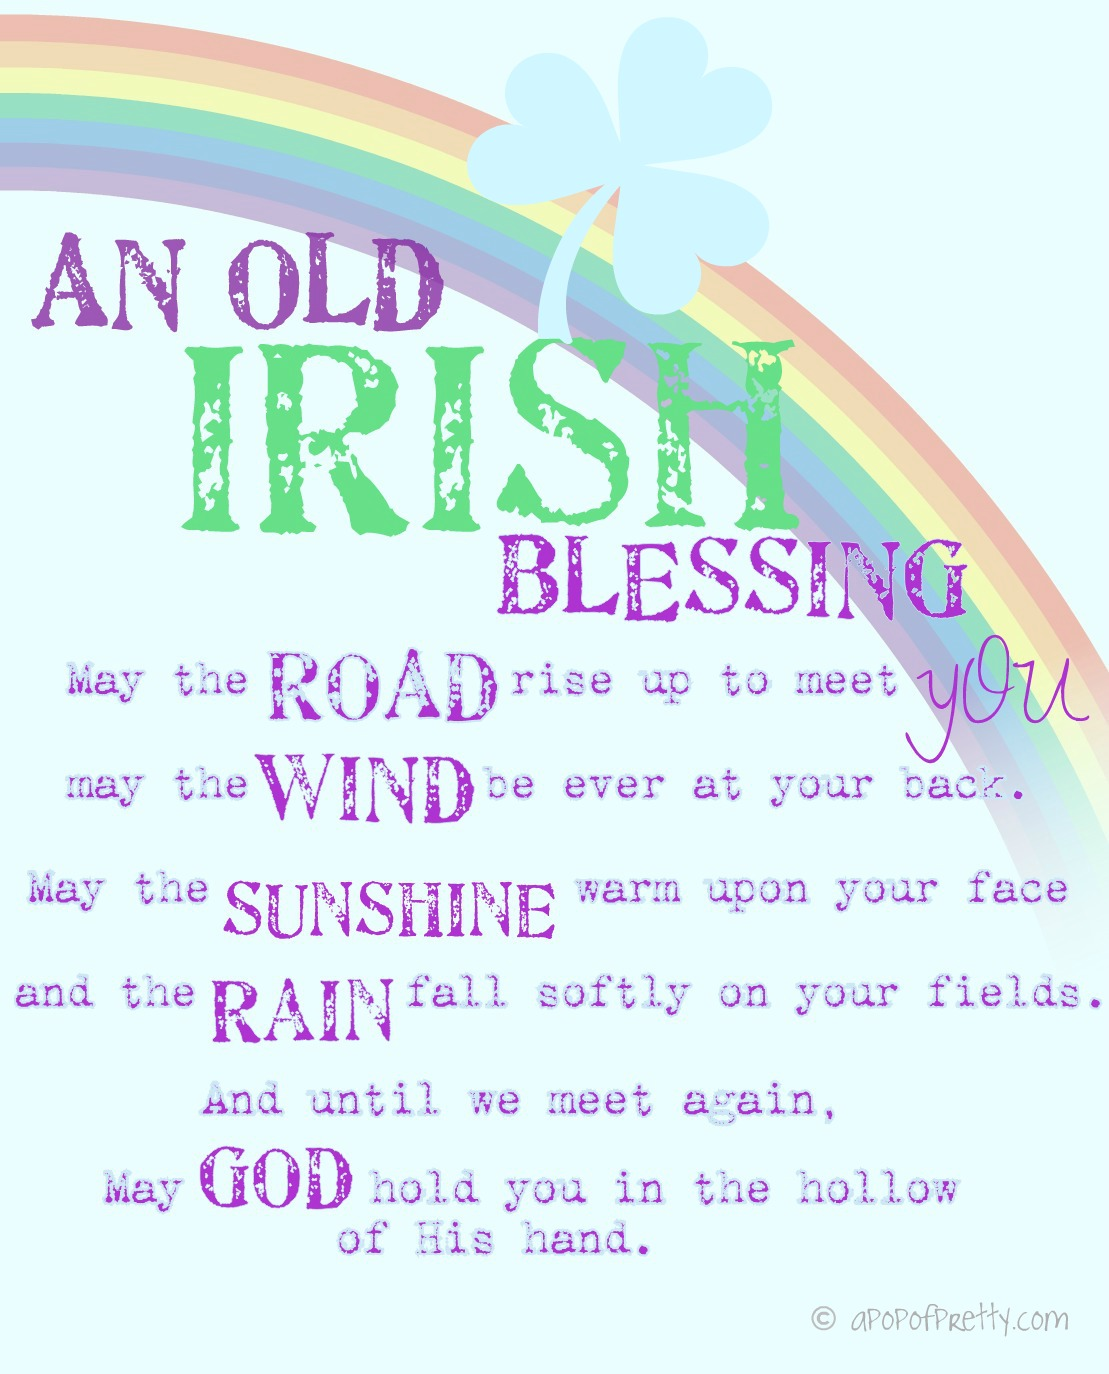 St Patricks day printable - may the road rise up